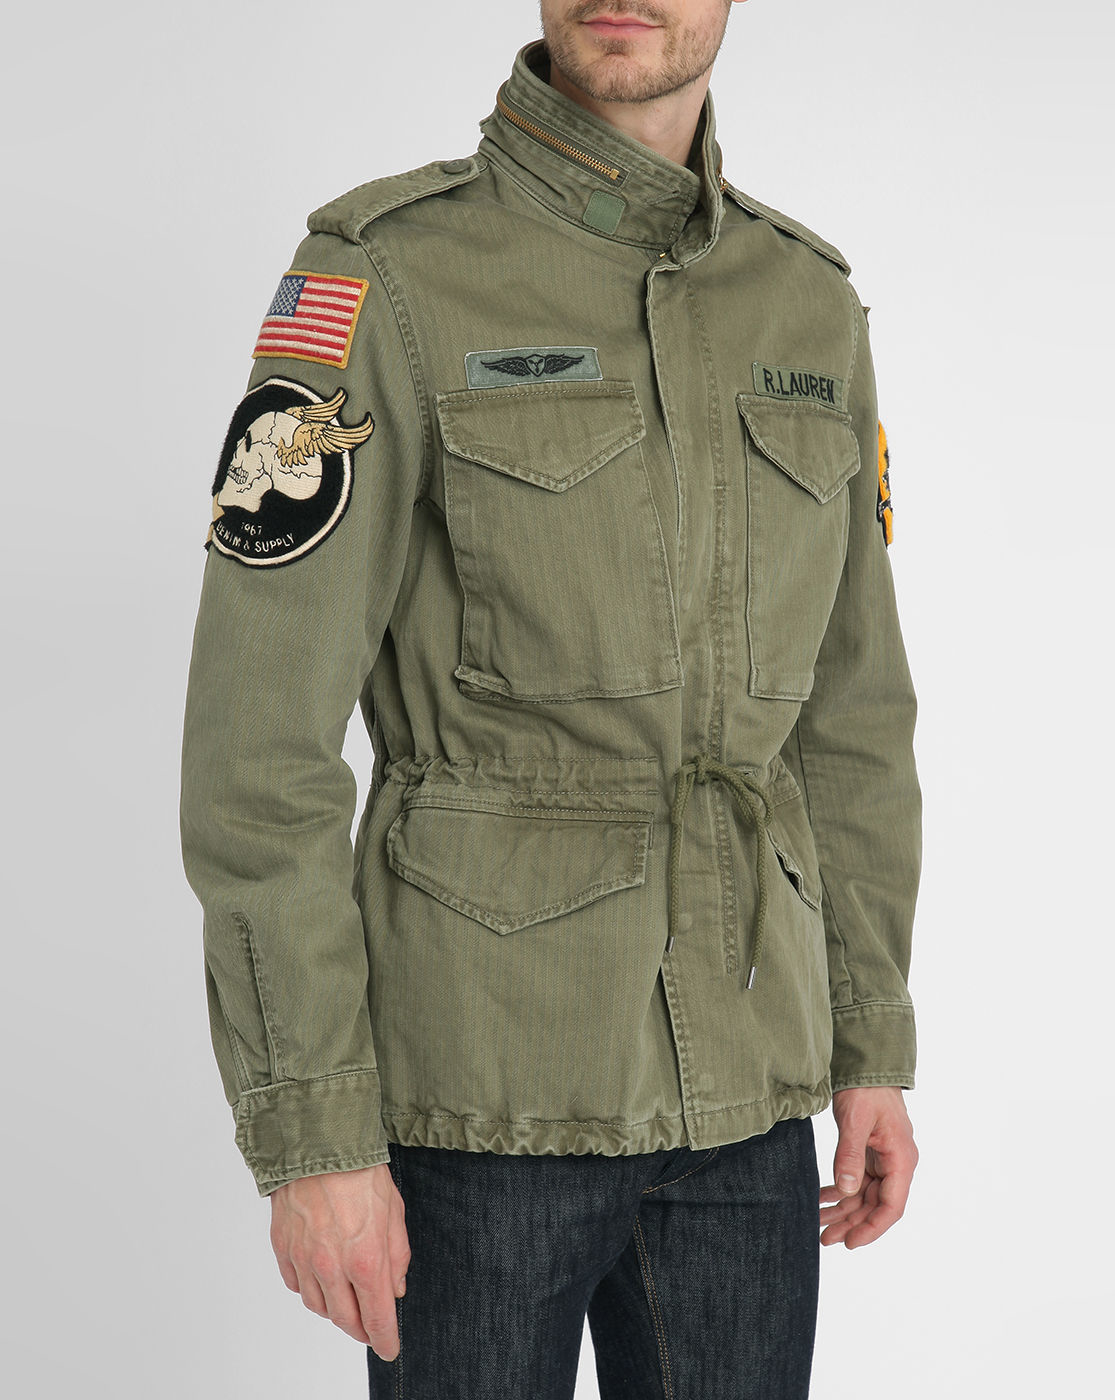 denim supply ralph lauren khaki m65 cotton patch jacket. Black Bedroom Furniture Sets. Home Design Ideas